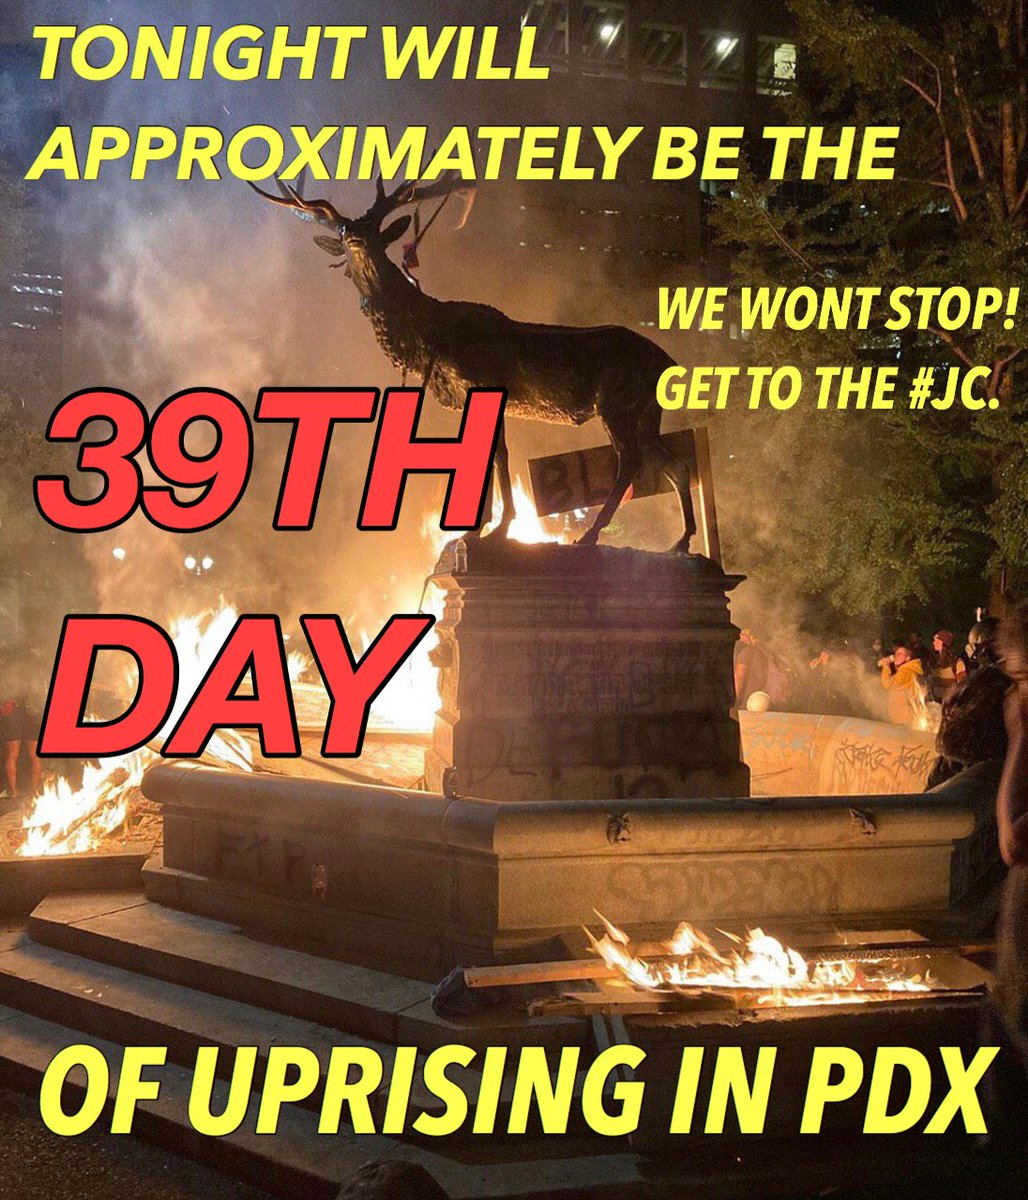 Tonight is the 39th day of the #pdxuprising, see y'all at the justice center! https://t.co/q0fefPOOJf